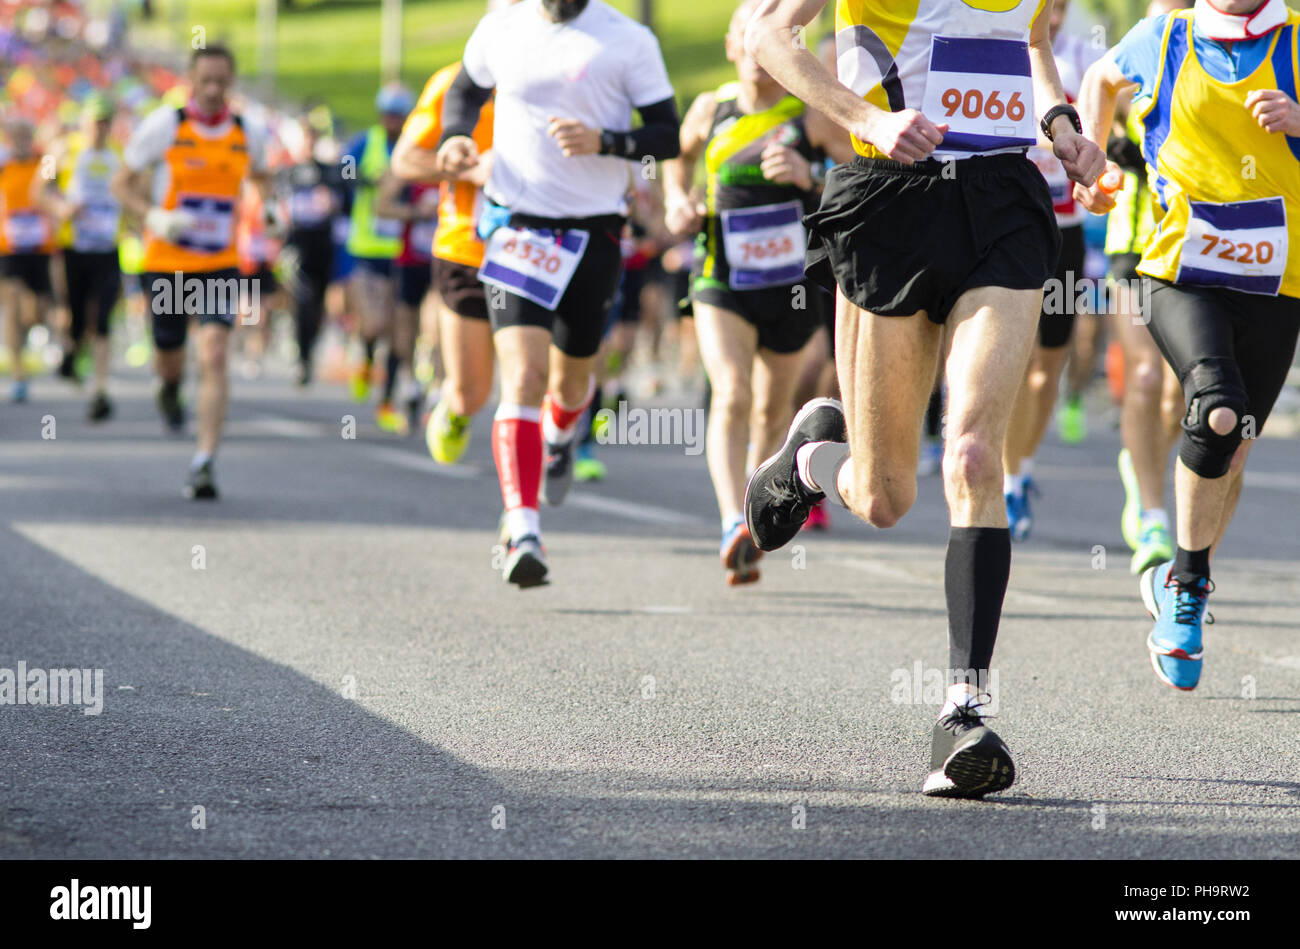 runners' legs during a marathon - Stock Image